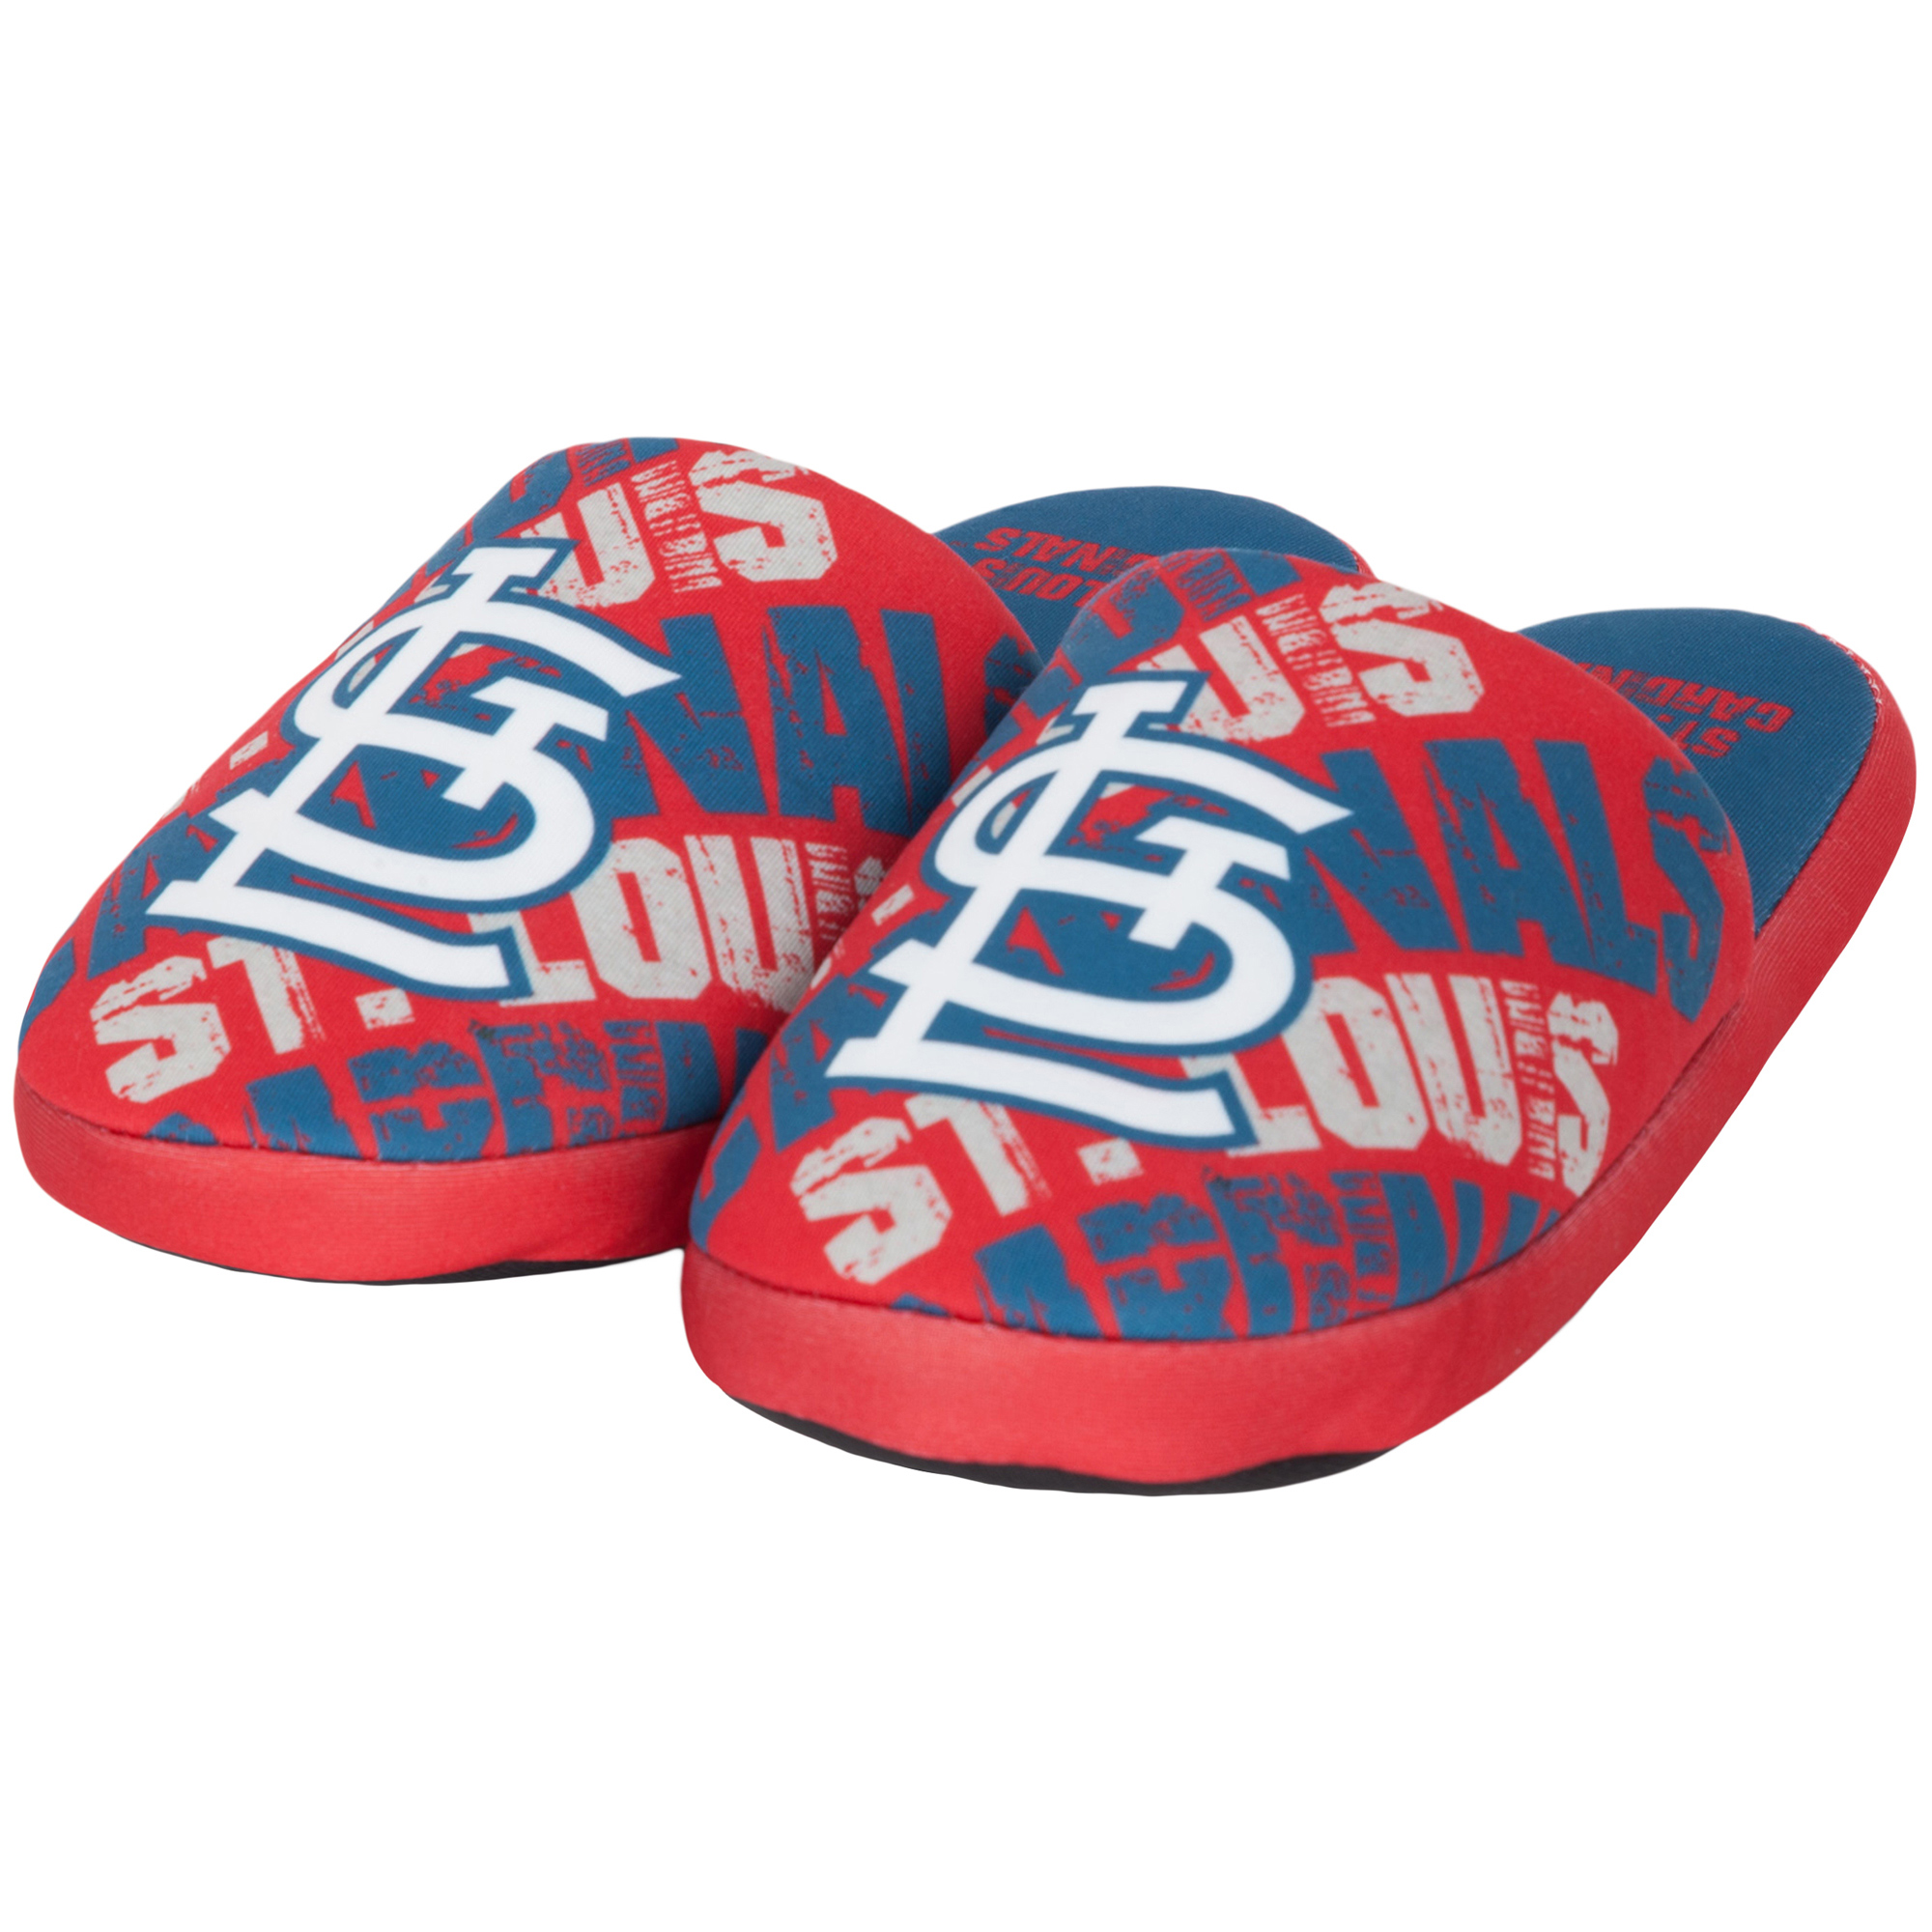 St. Louis Cardinals Youth Wordmark Printed Slippers - Red